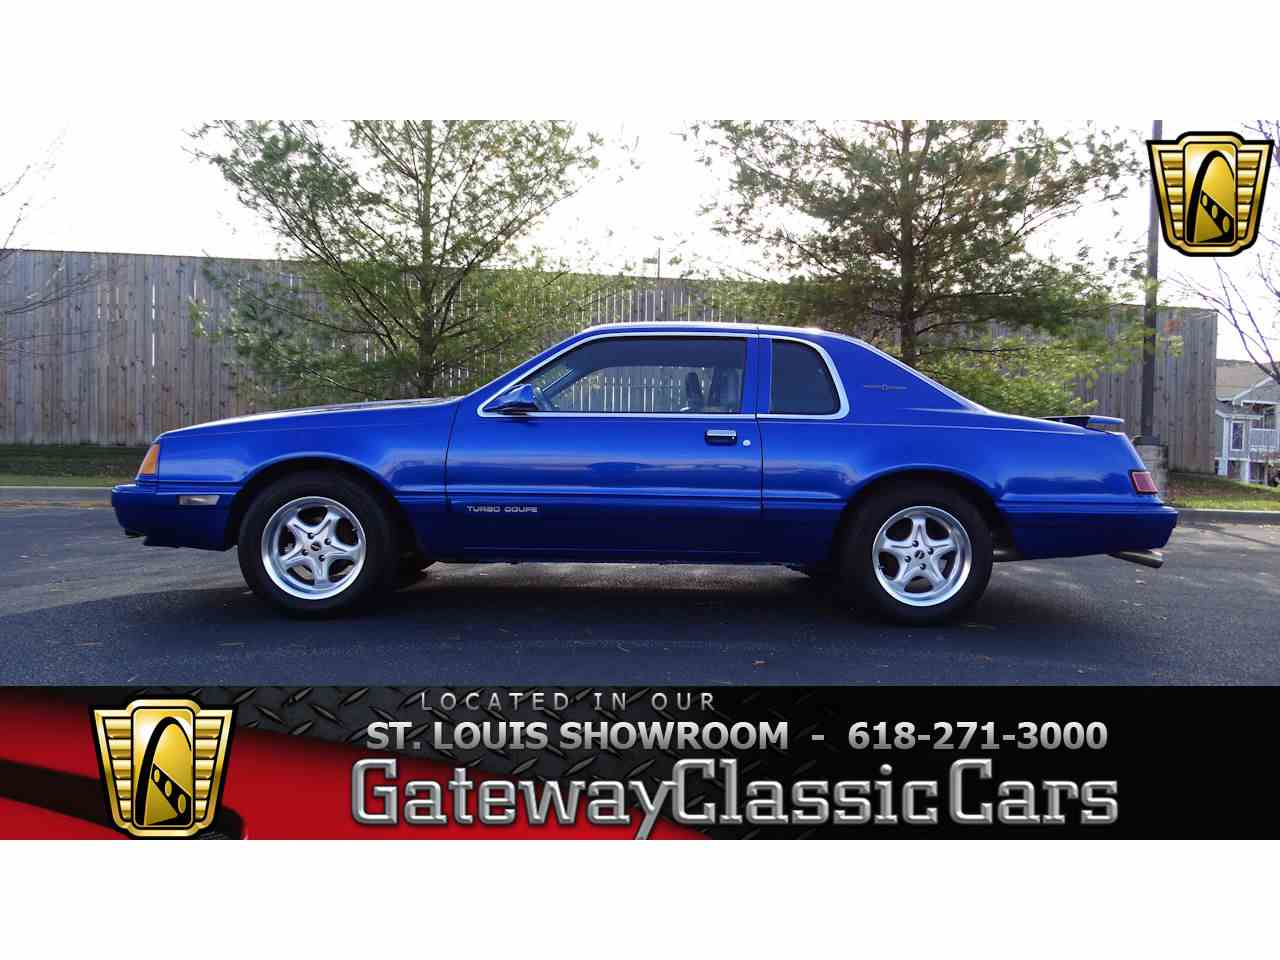 Large Picture of 1984 Ford Thunderbird located in O'Fallon Illinois - $8,995.00 Offered by Gateway Classic Cars - St. Louis - MFDZ